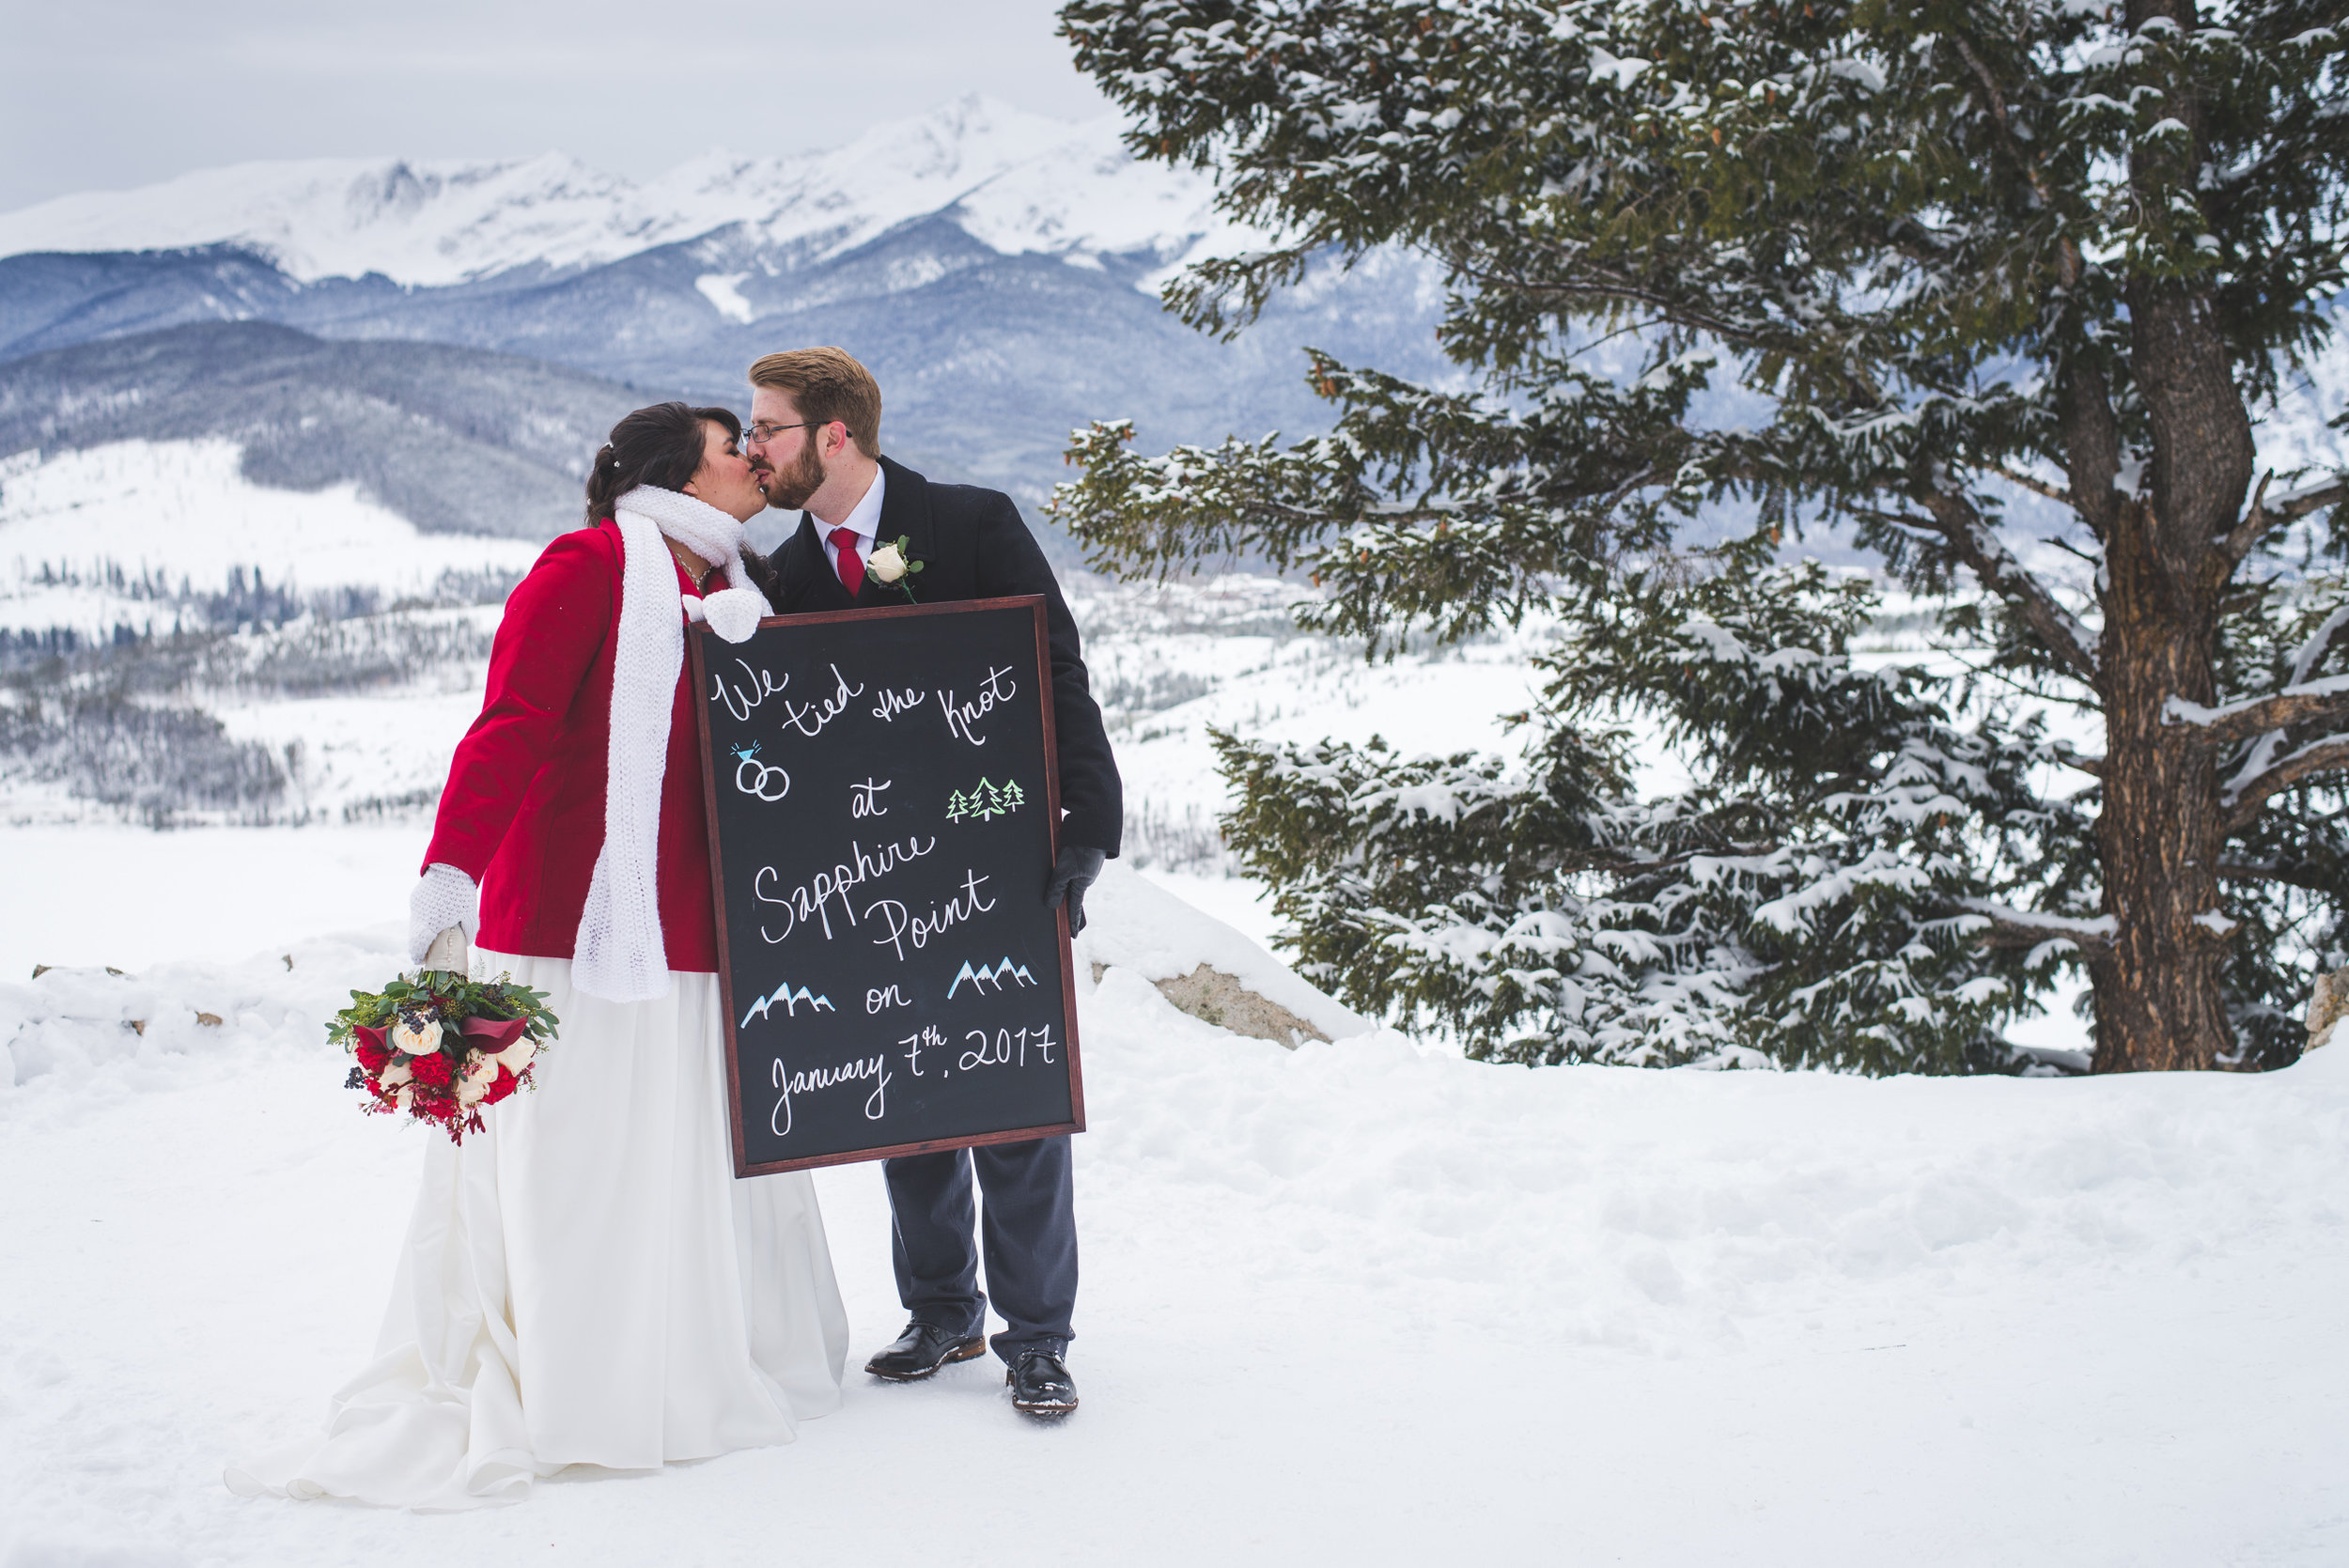 What a sweet chalkboard sign (and amazing view!) commemorating this couple's destination elopement in the Colorado mountains!